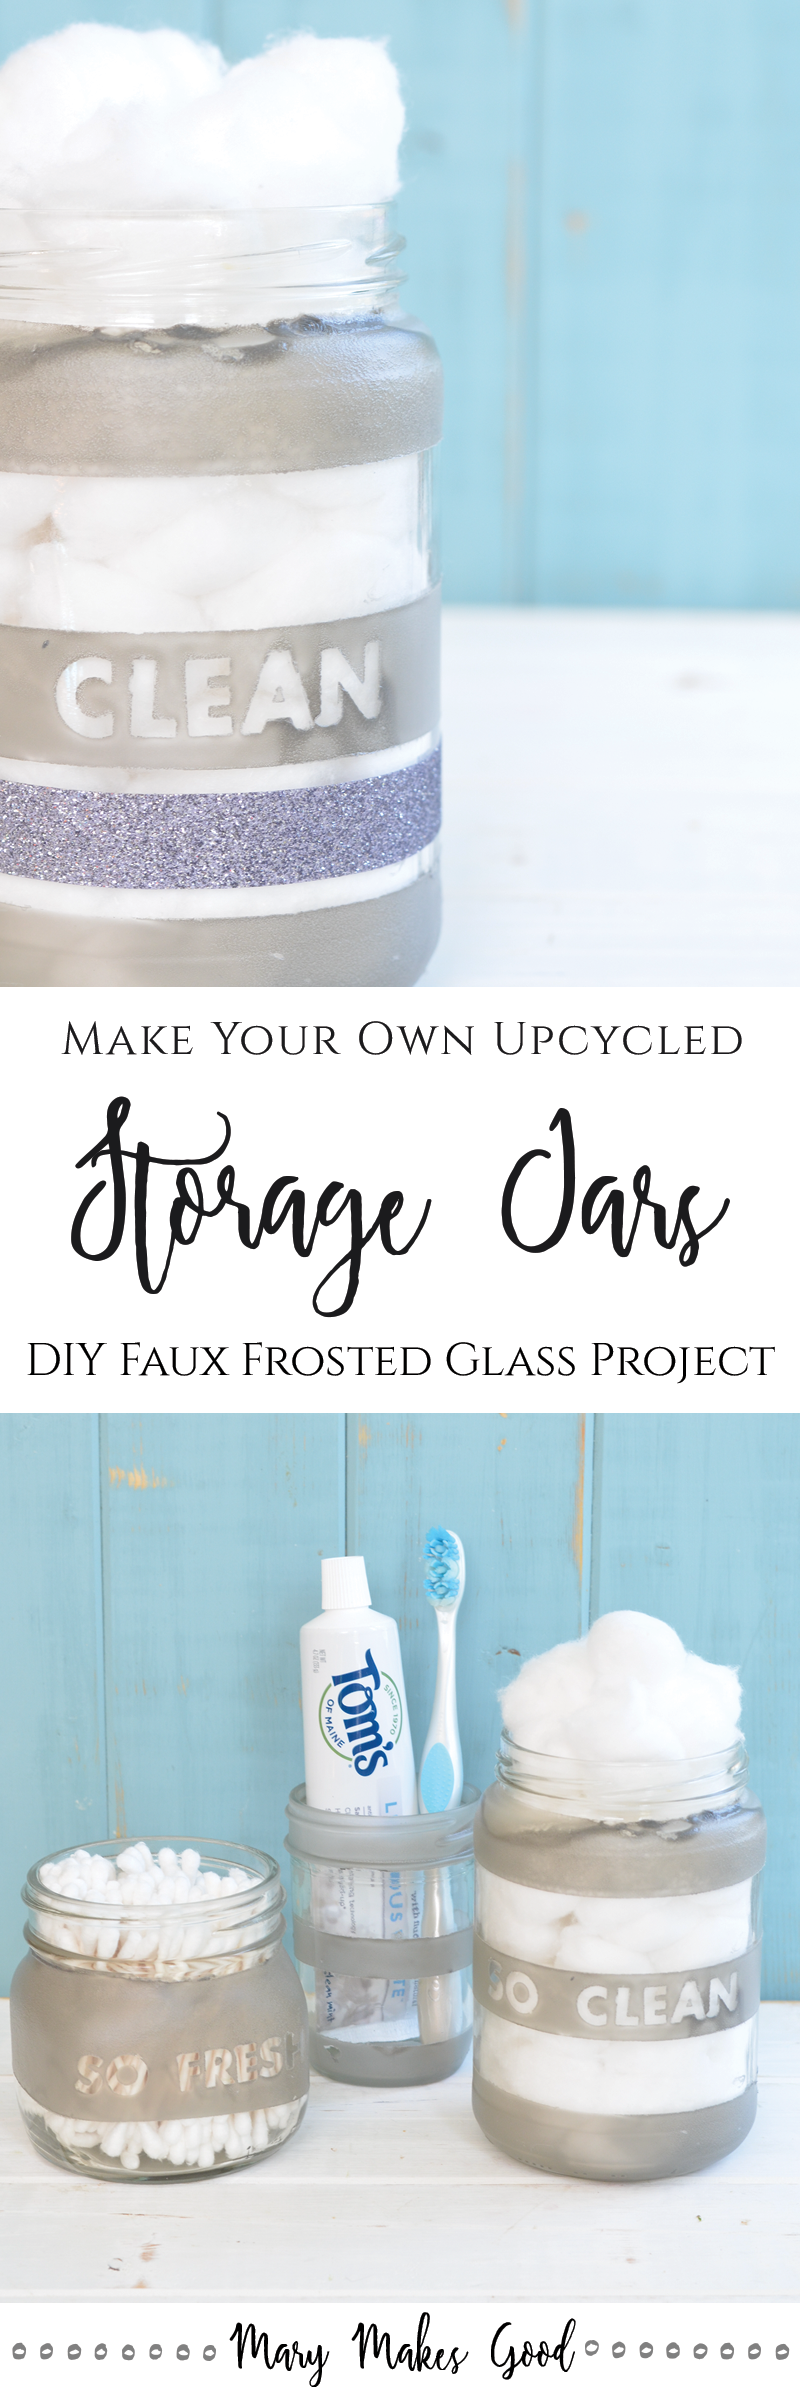 Make Your Own Frosted Upycyled Glass Bathroom Storage Jars